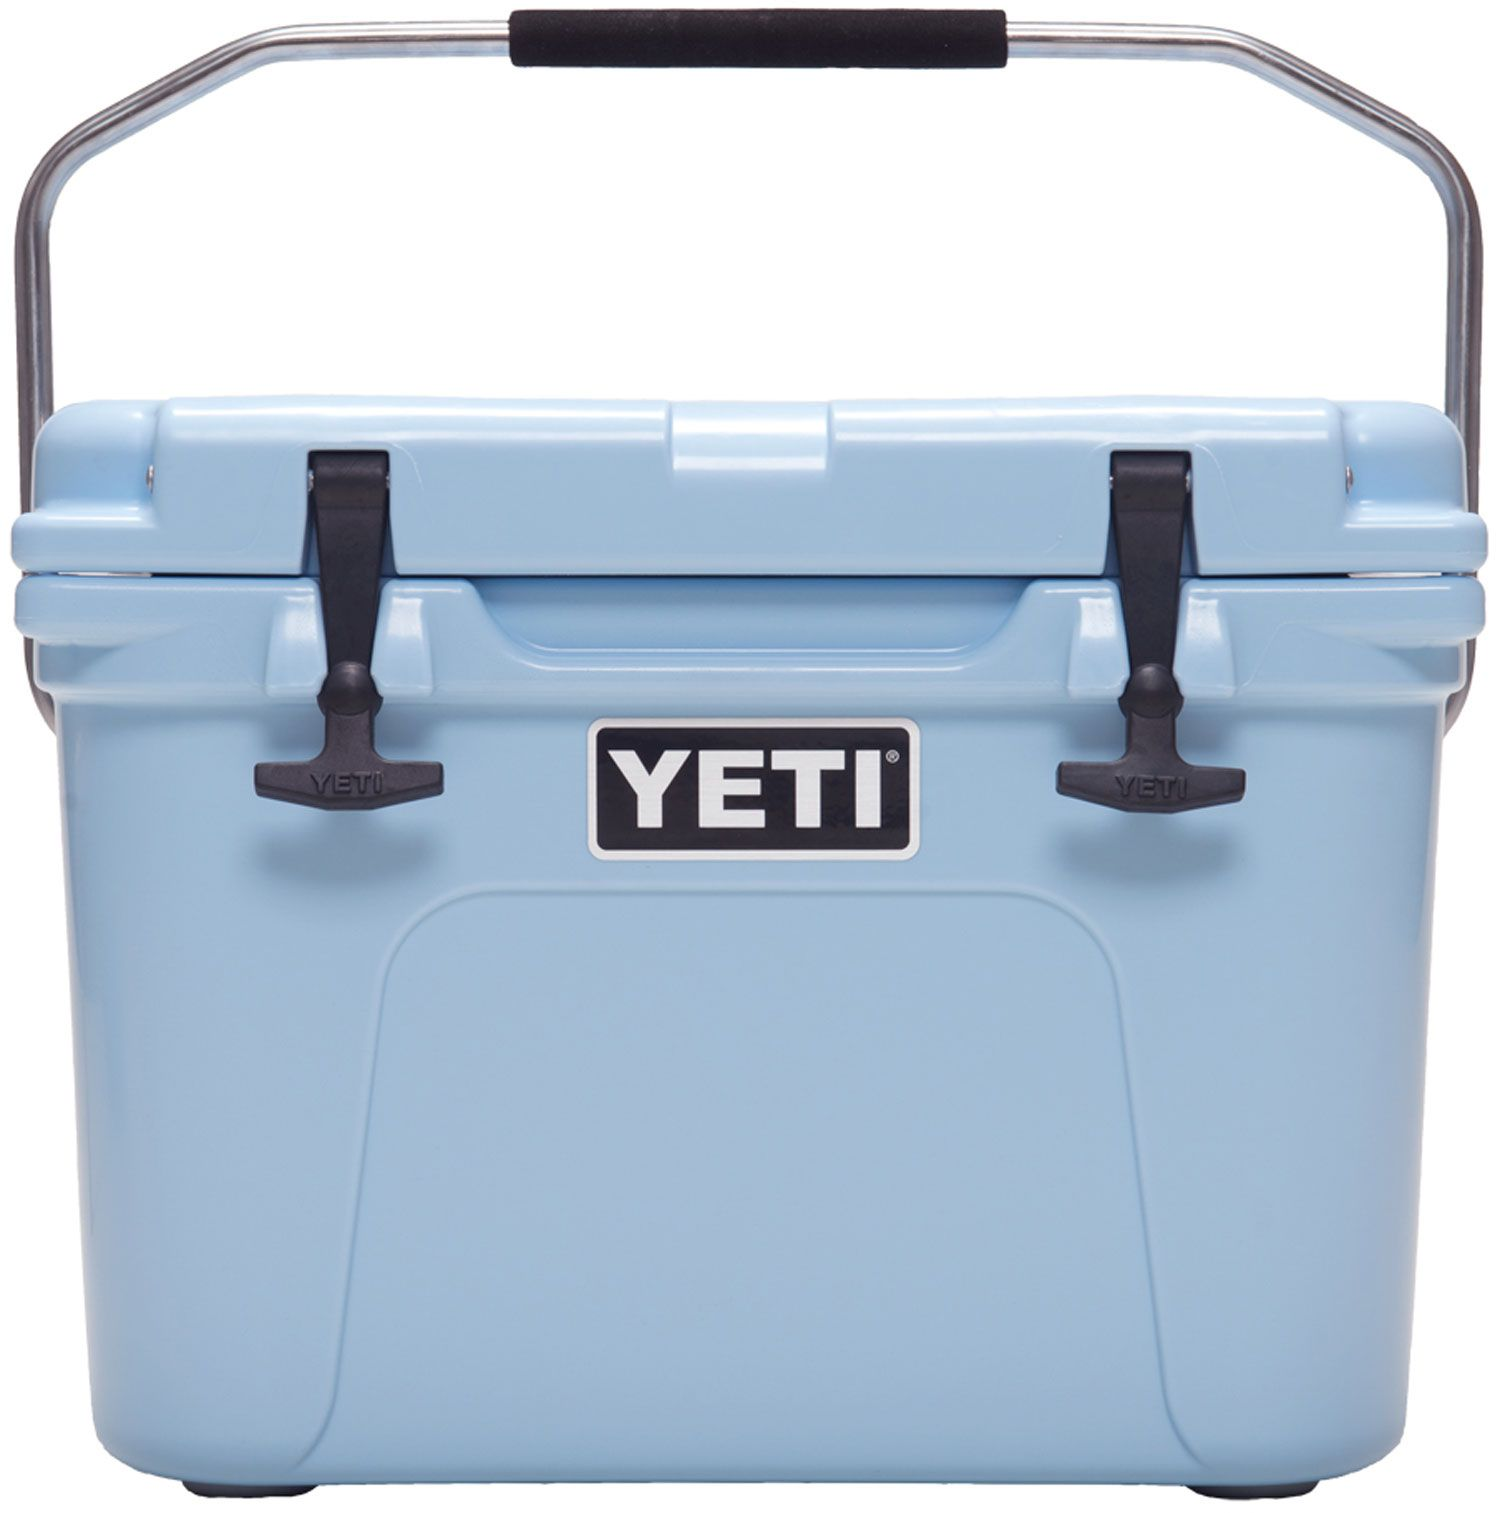 Image result for yeti roadie